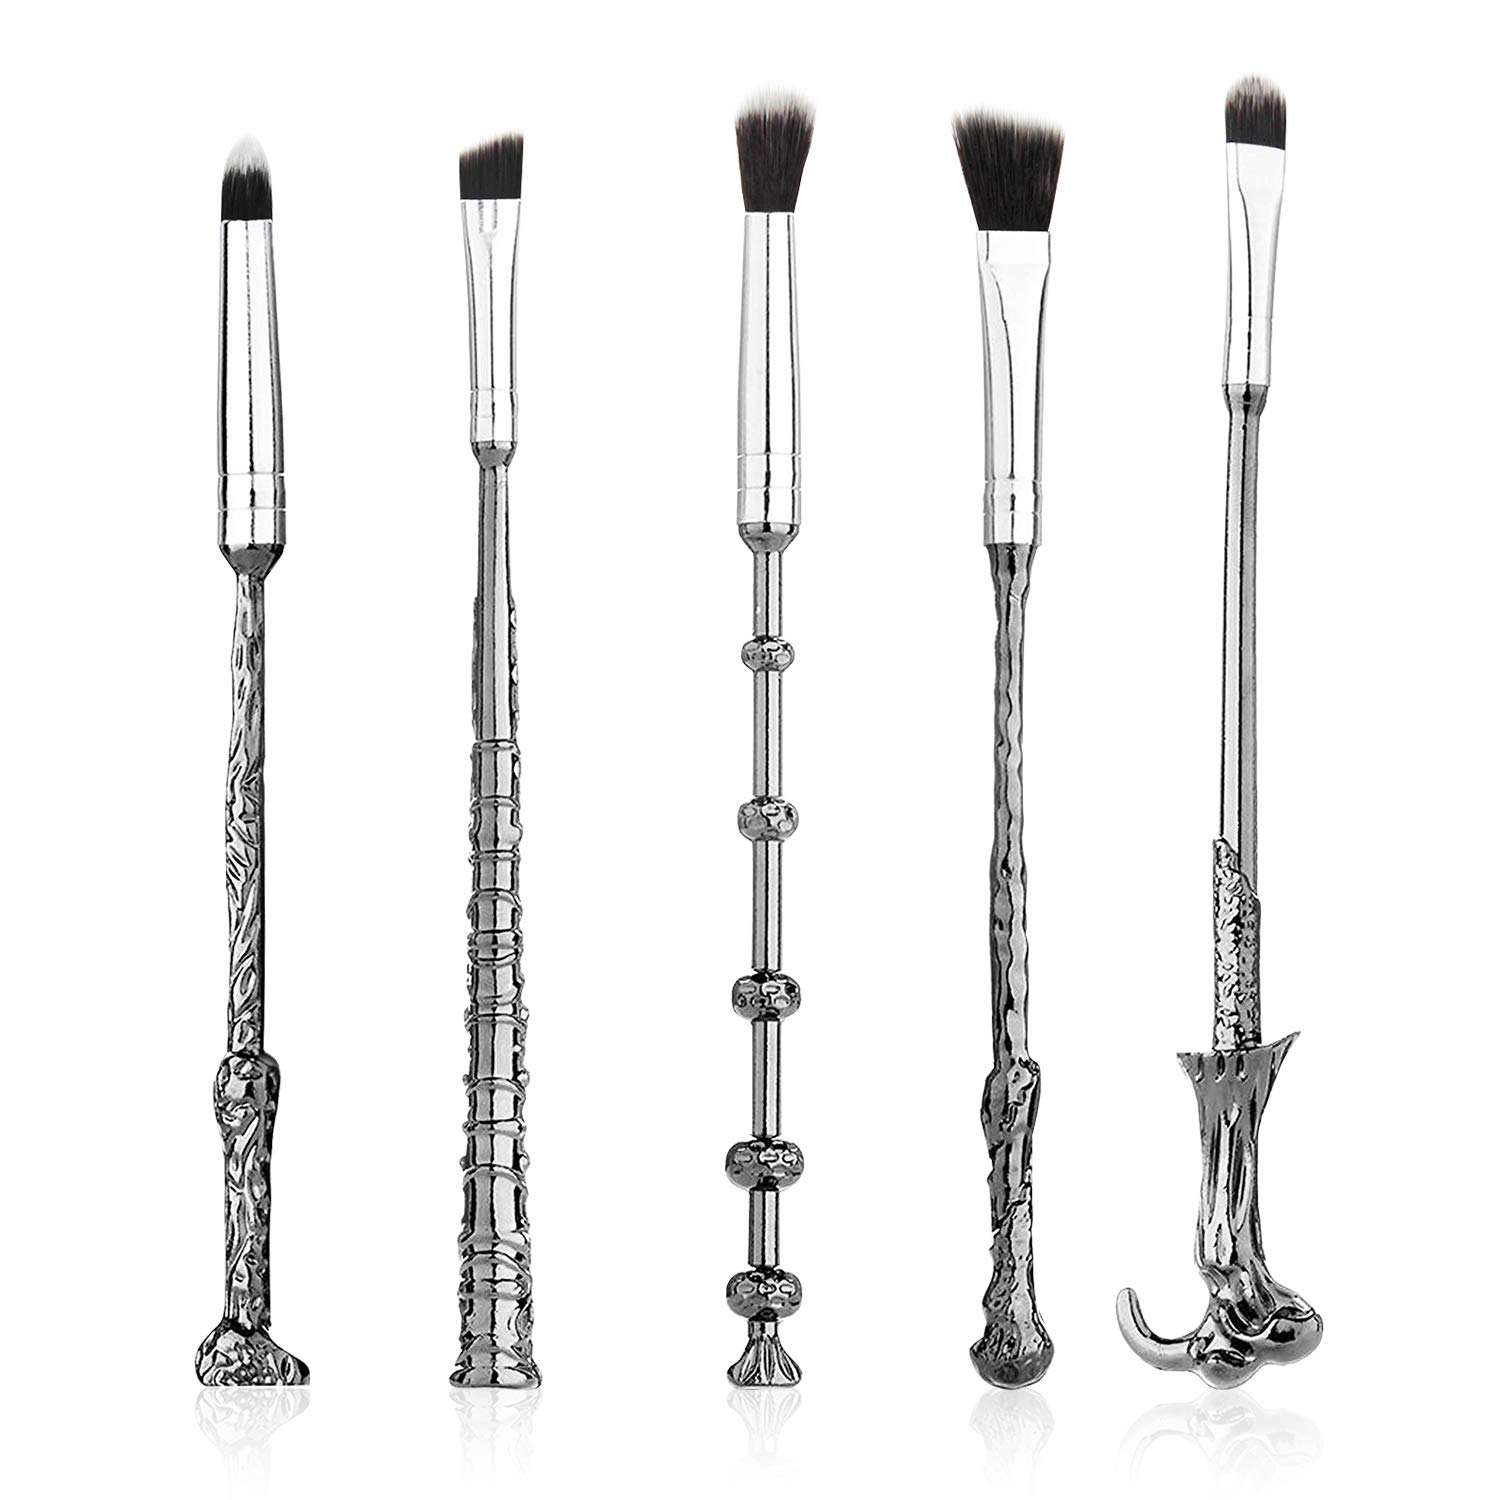 5 Pcs Wizard Wand Makeup Brushes Set, Metal Magic Eye Shadow Eye Liner Lip Brush Silver Cosmetic Brushes Black Soft Hair Beauty Tools with Pouch